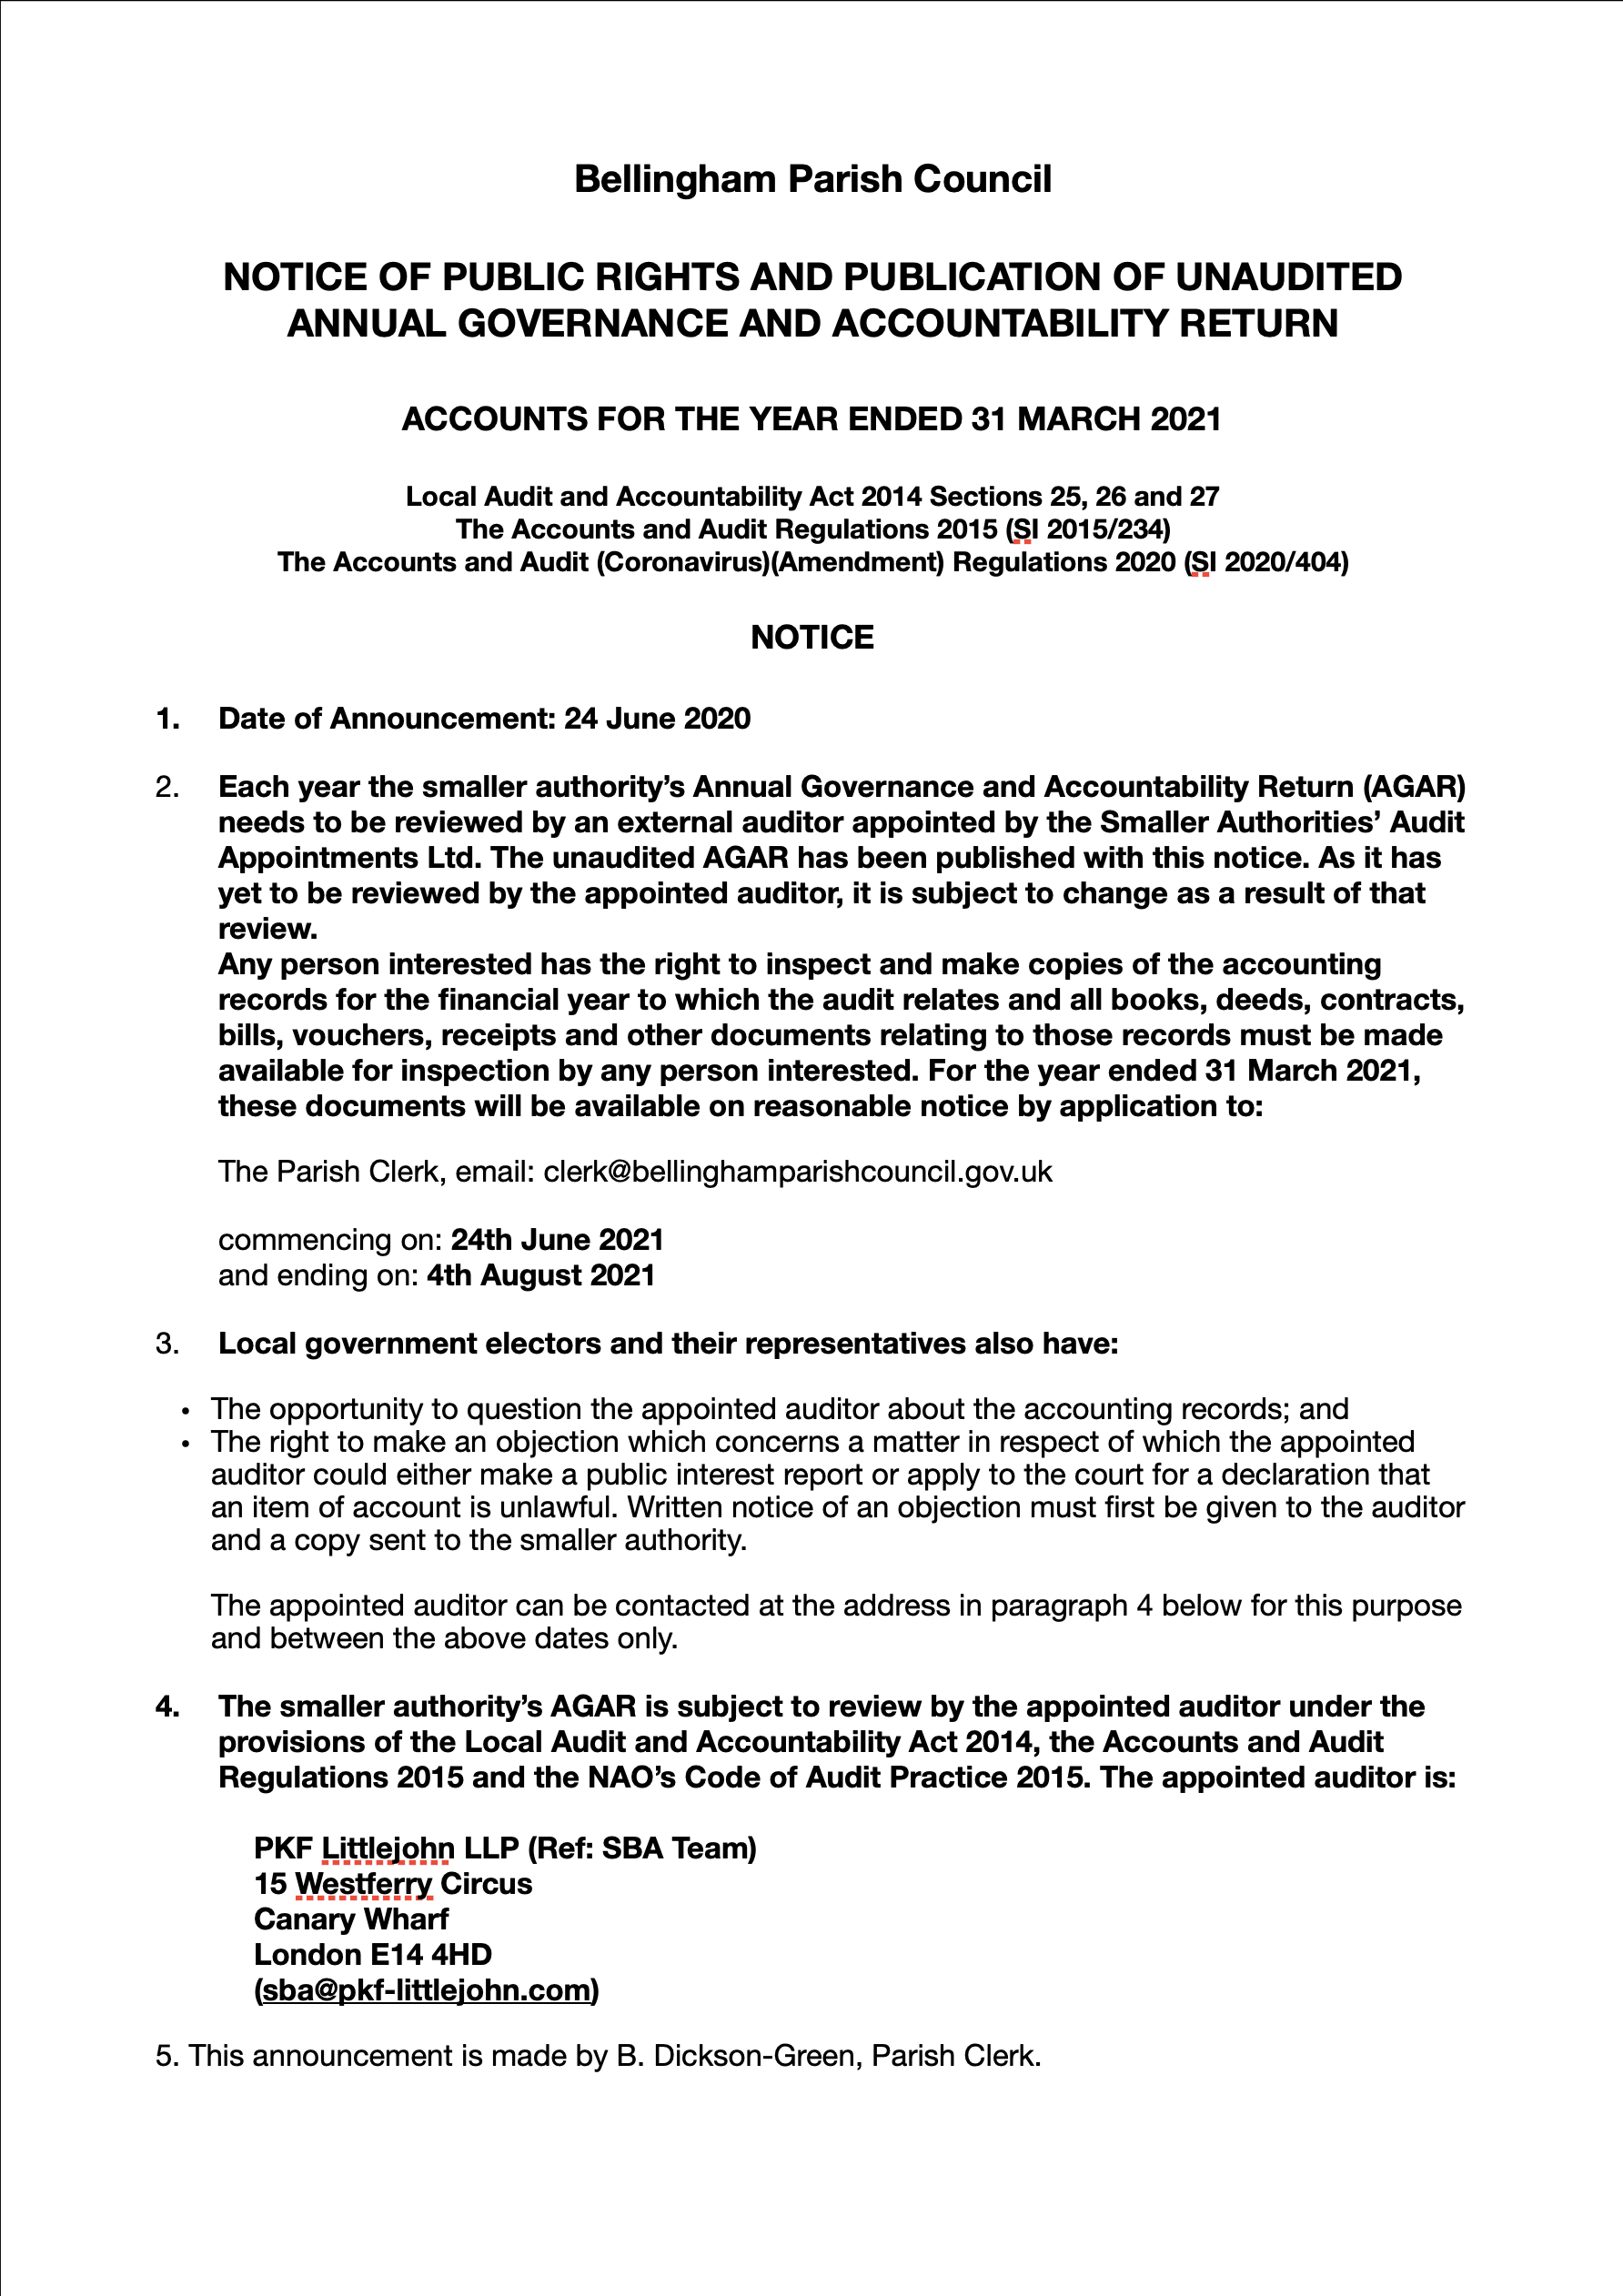 notice of public rights and publication of unaudited annual governance and accountability return